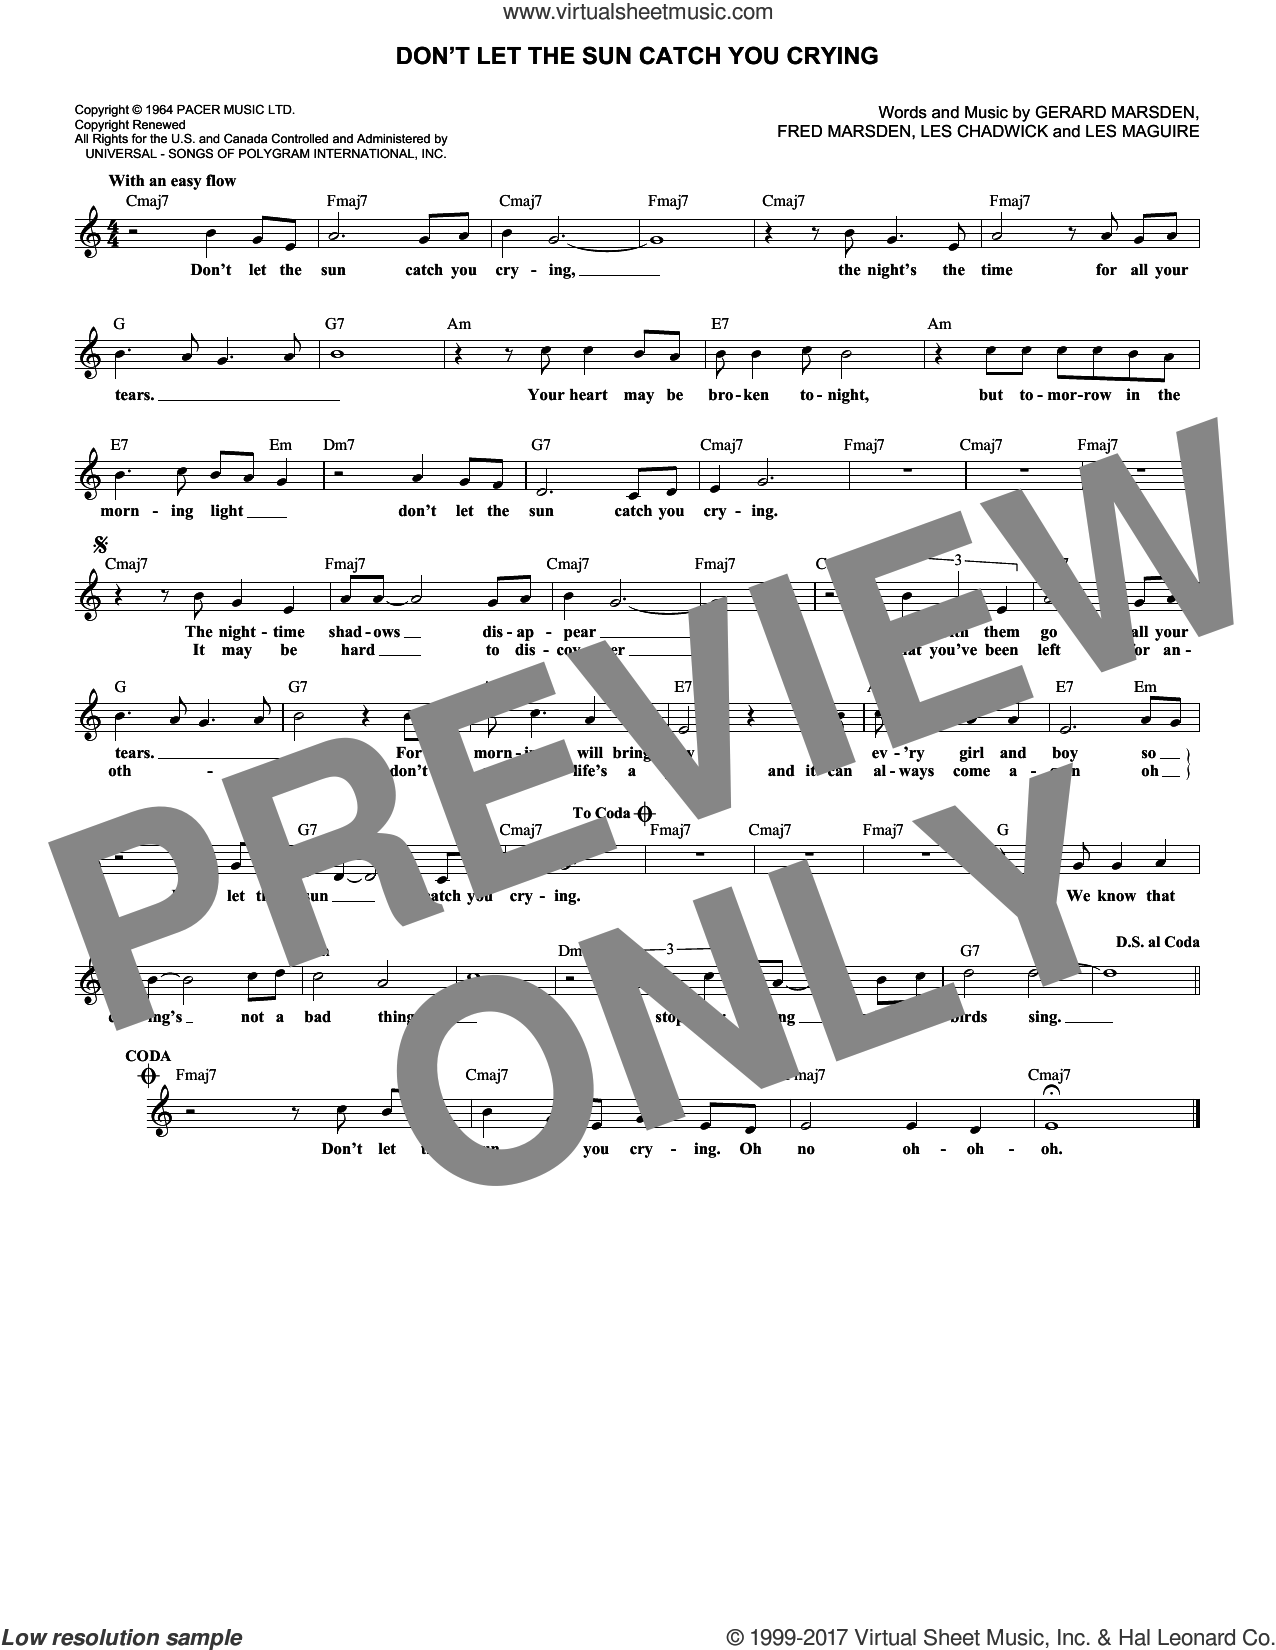 Don't Let The Sun Catch You Crying sheet music for voice and other instruments (fake book) by Gerry & The Pacemakers, intermediate voice. Score Image Preview.